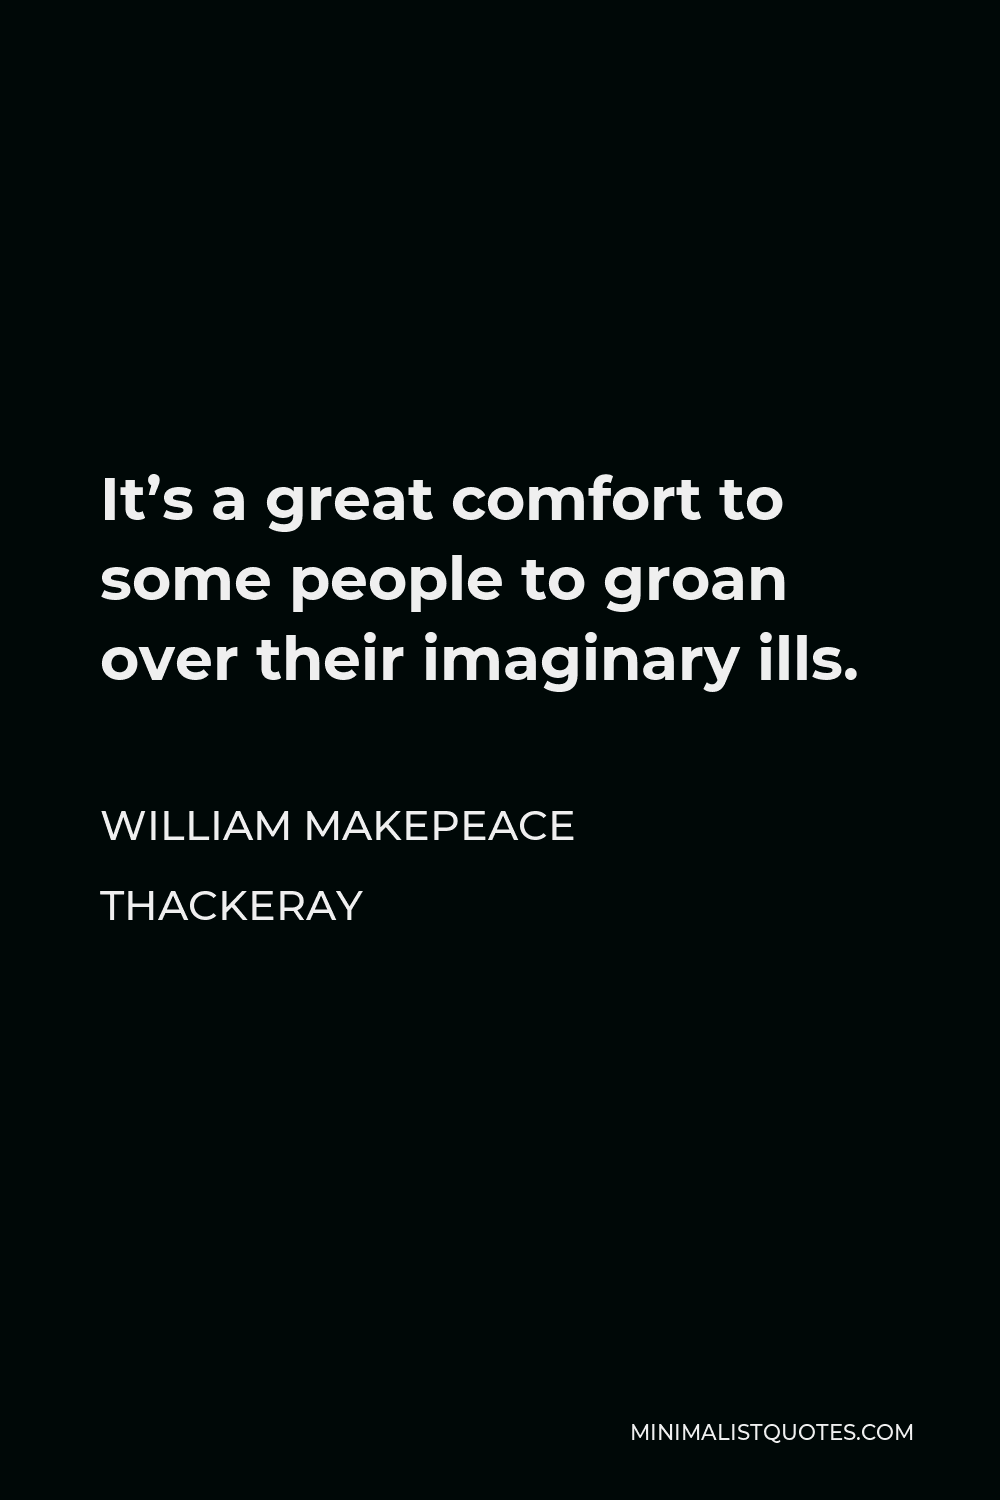 William Makepeace Thackeray Quote - It's a great comfort to some people to groan over their imaginary ills.